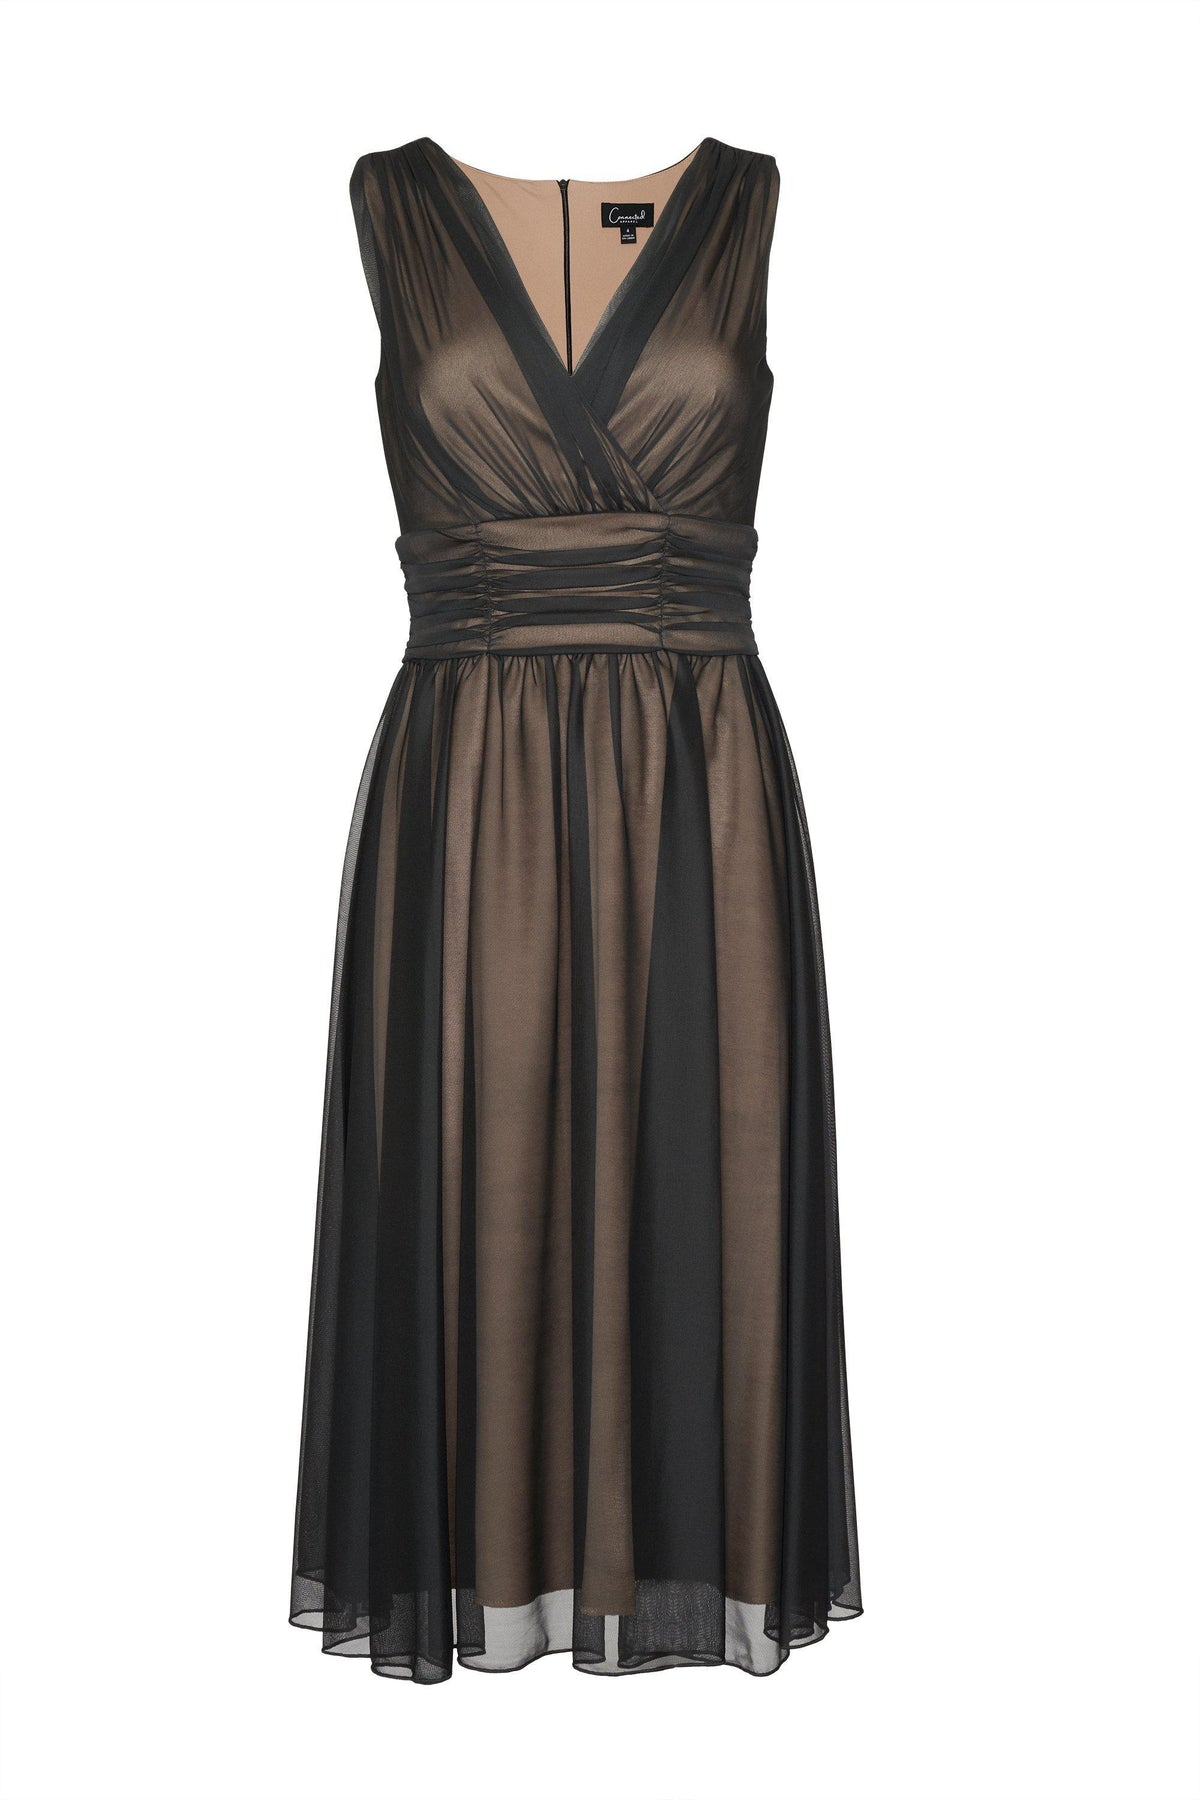 Woman posing wearing Black/Gold Cora Sleeveless A-Line Midi Dress from Connected Apparel